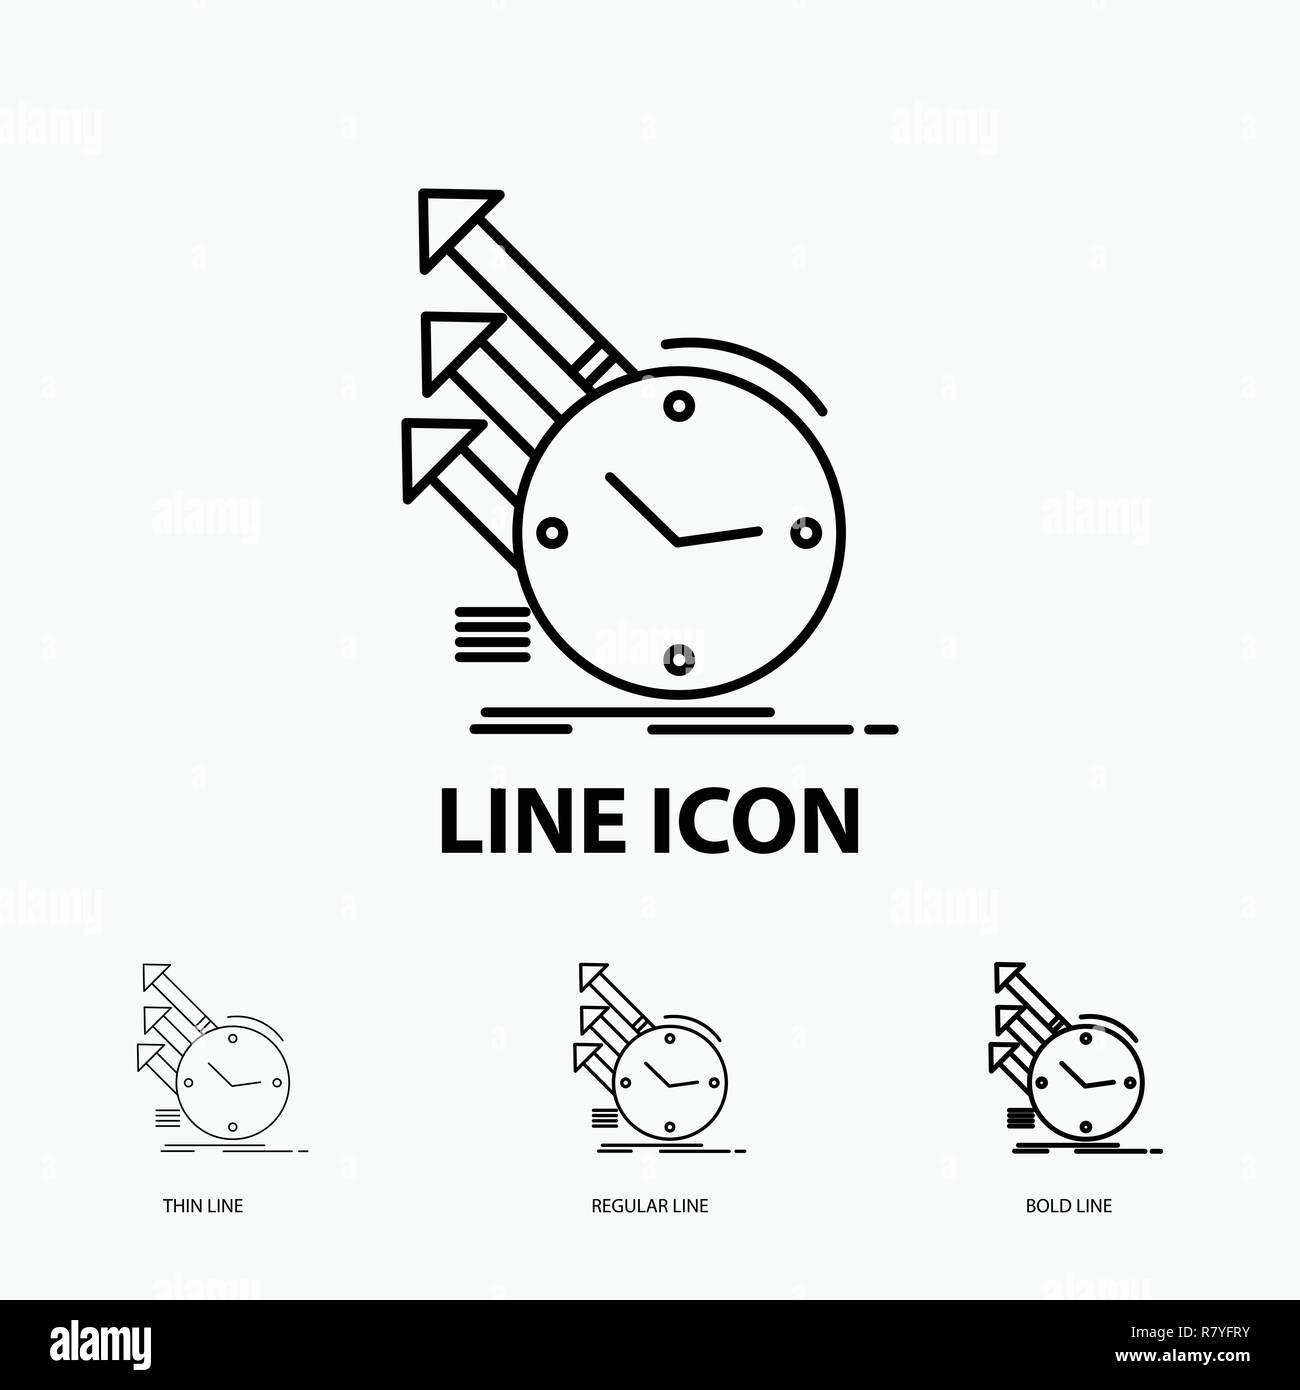 line stock photos line stock images page 298 alamy Timeline Template Infographic detection inspection of regularities research icon in thin regular and bold